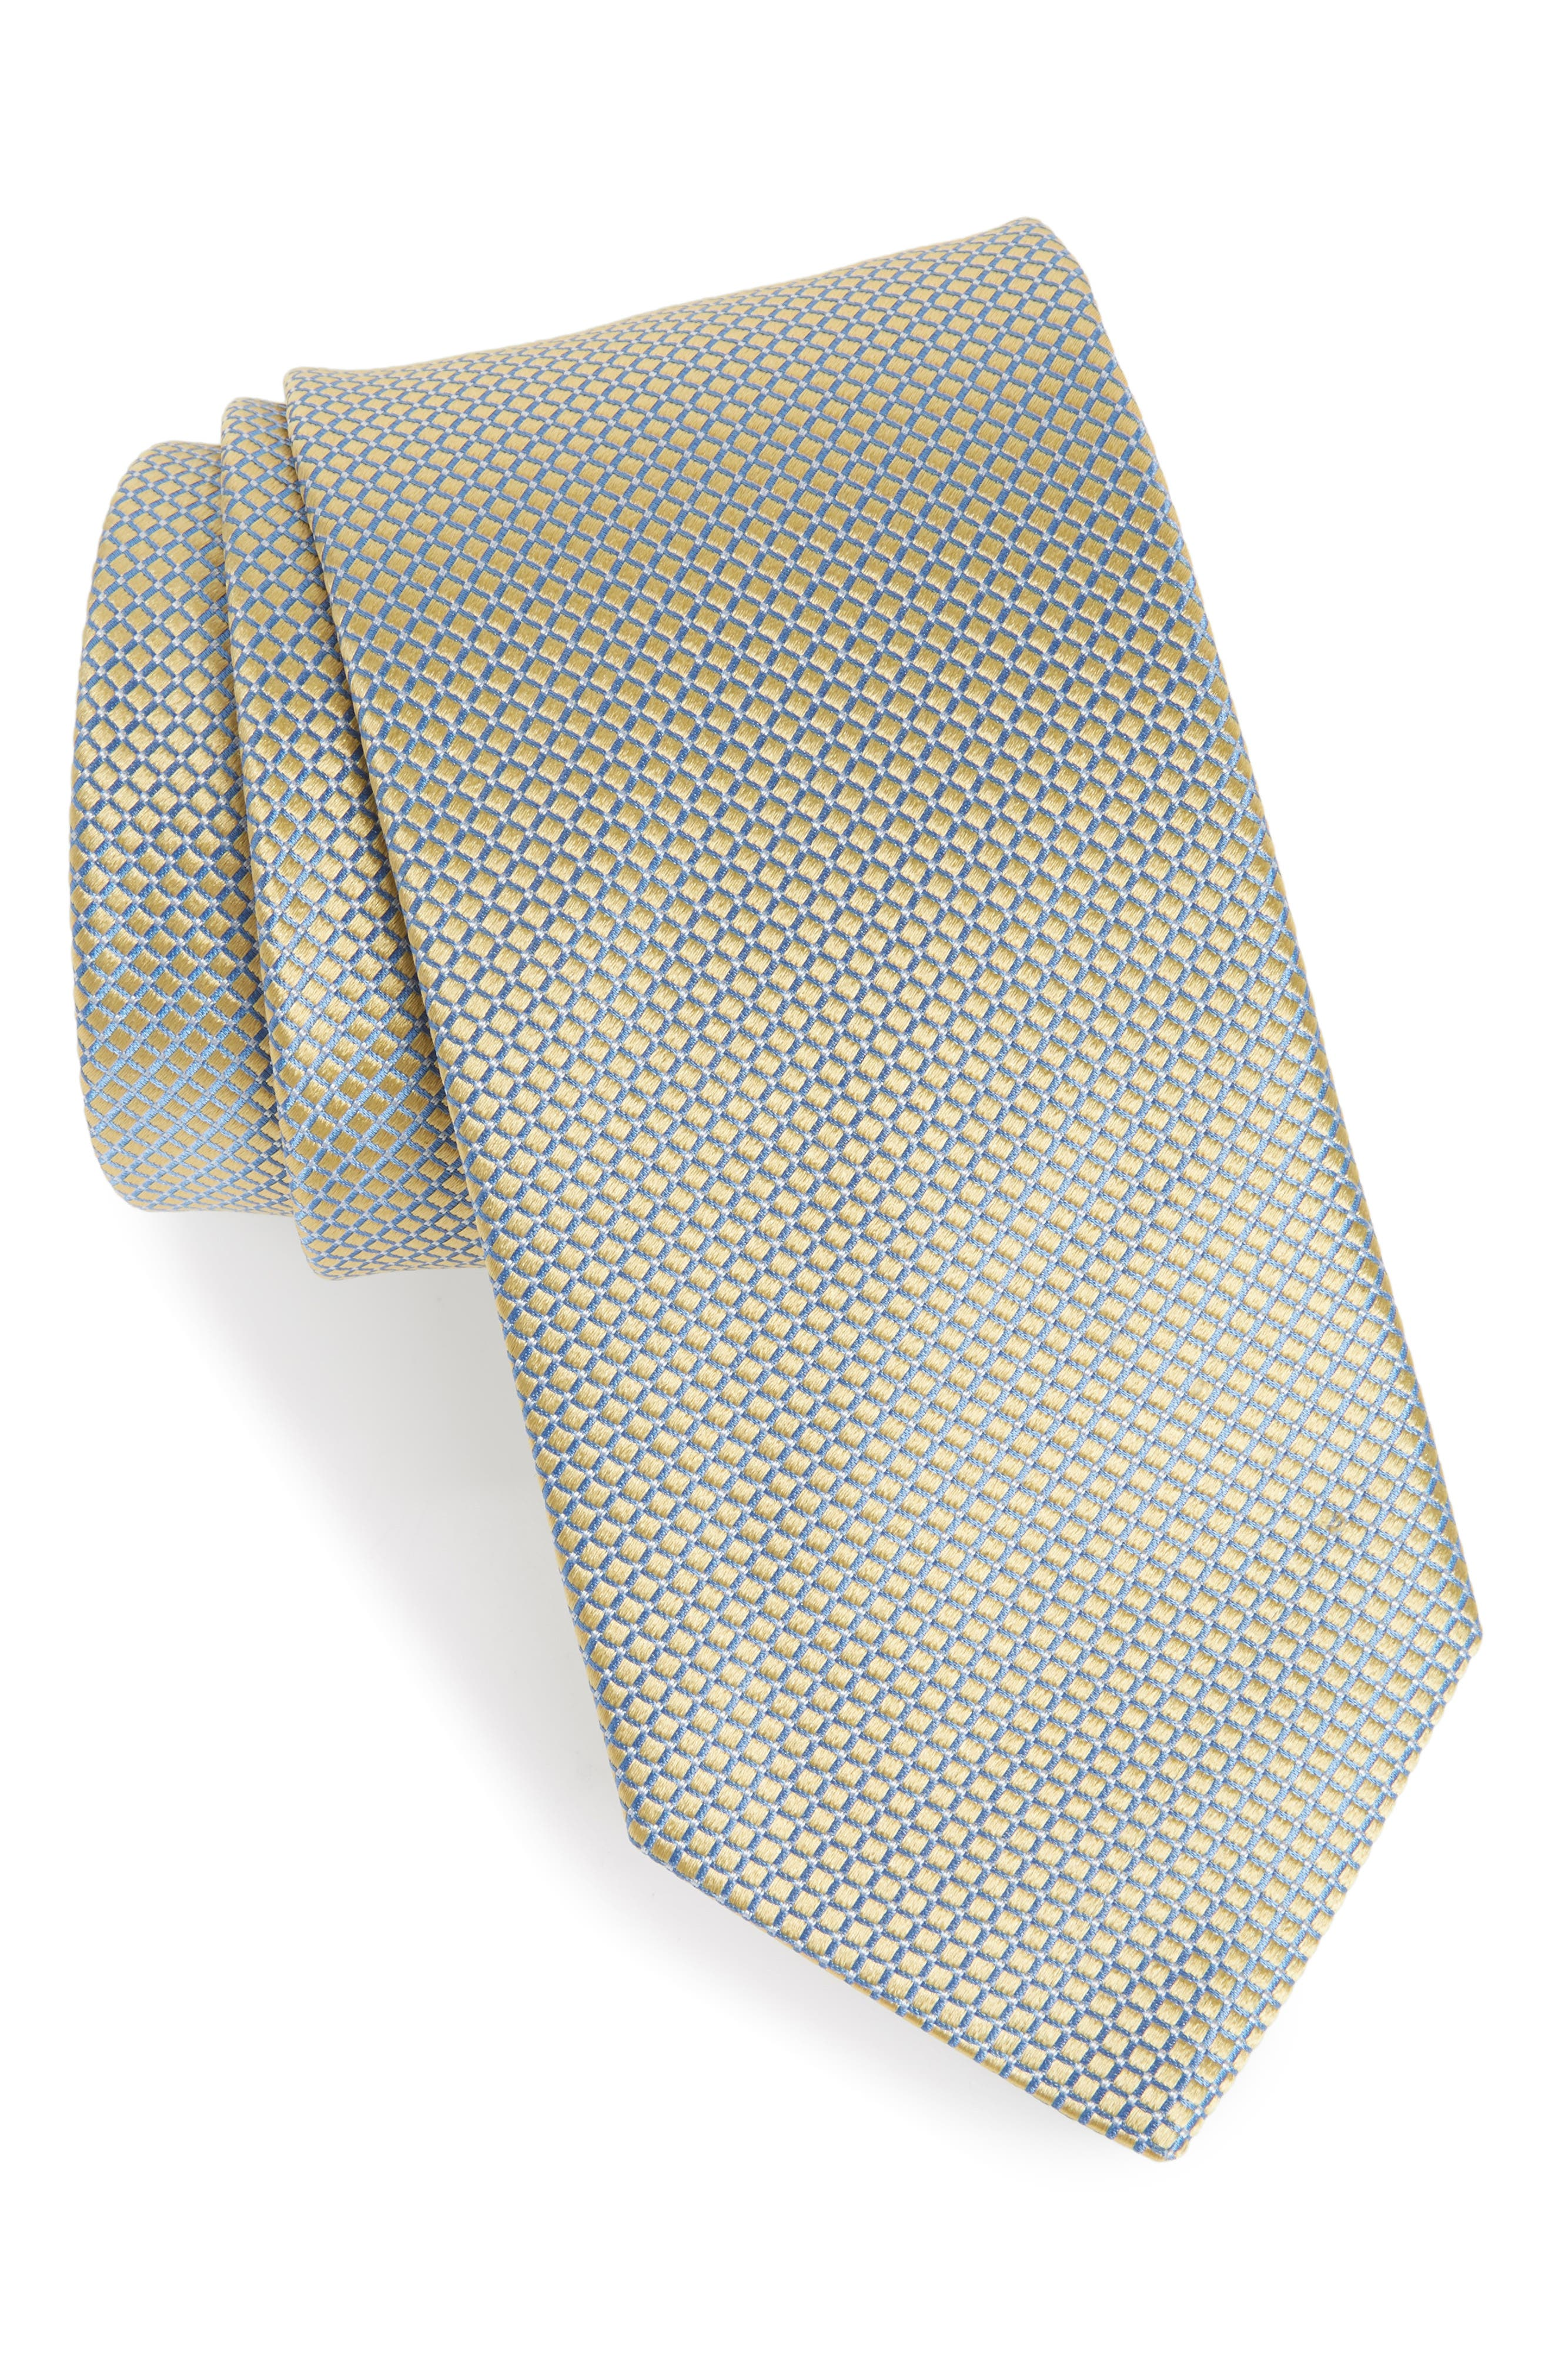 Geometric Silk Tie,                             Main thumbnail 1, color,                             YELLOW